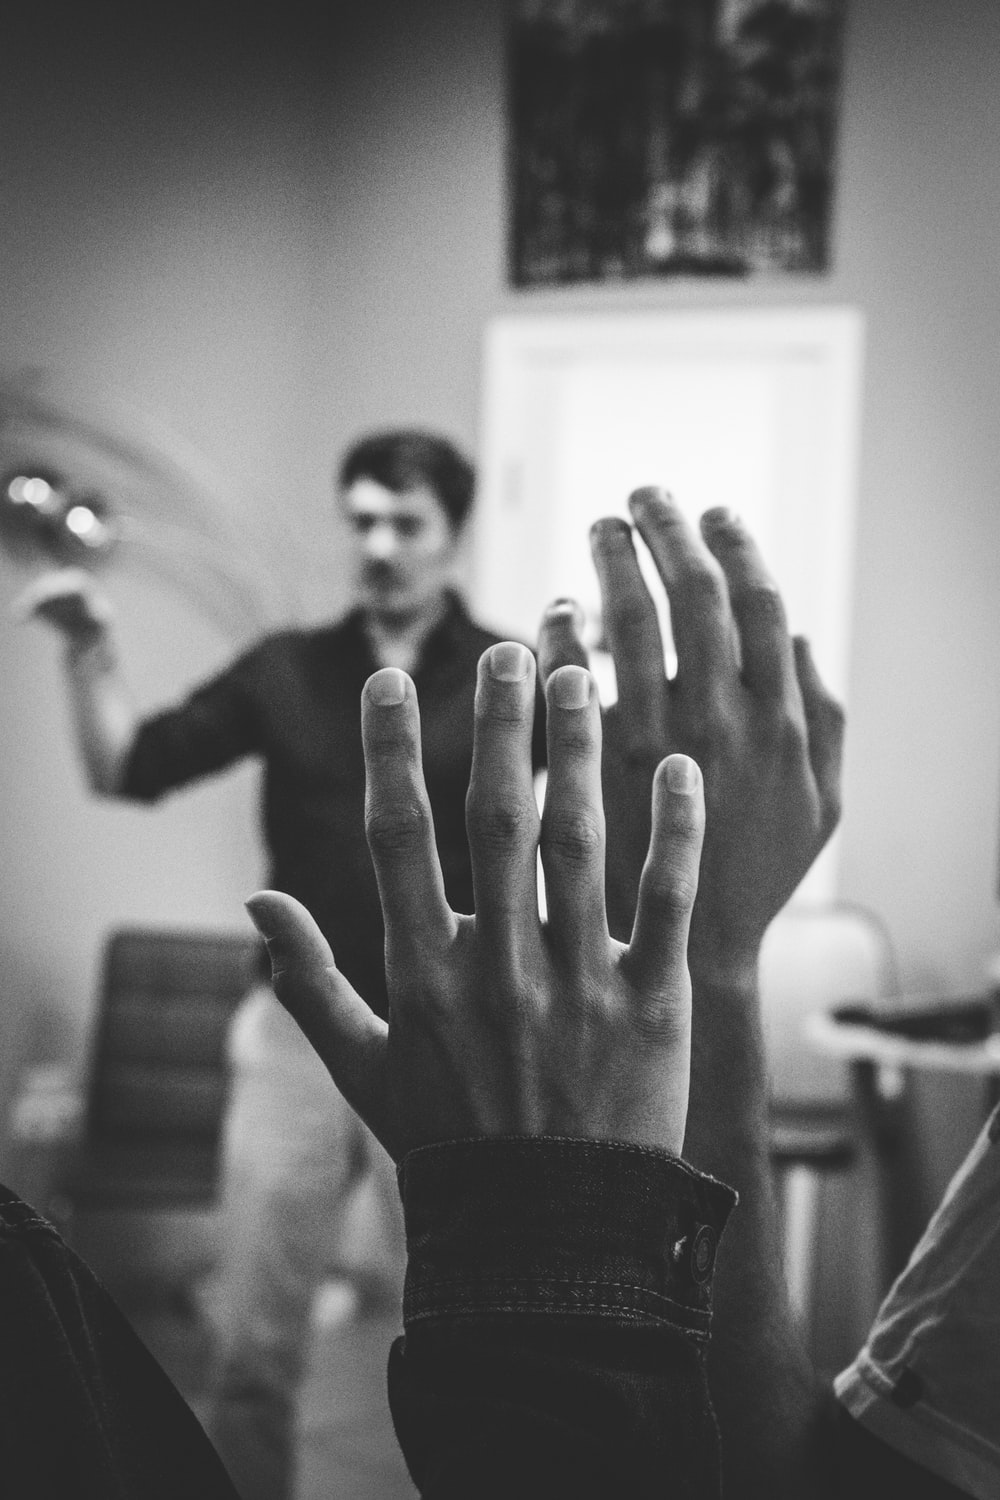 grayscale photography of two people raising their hands